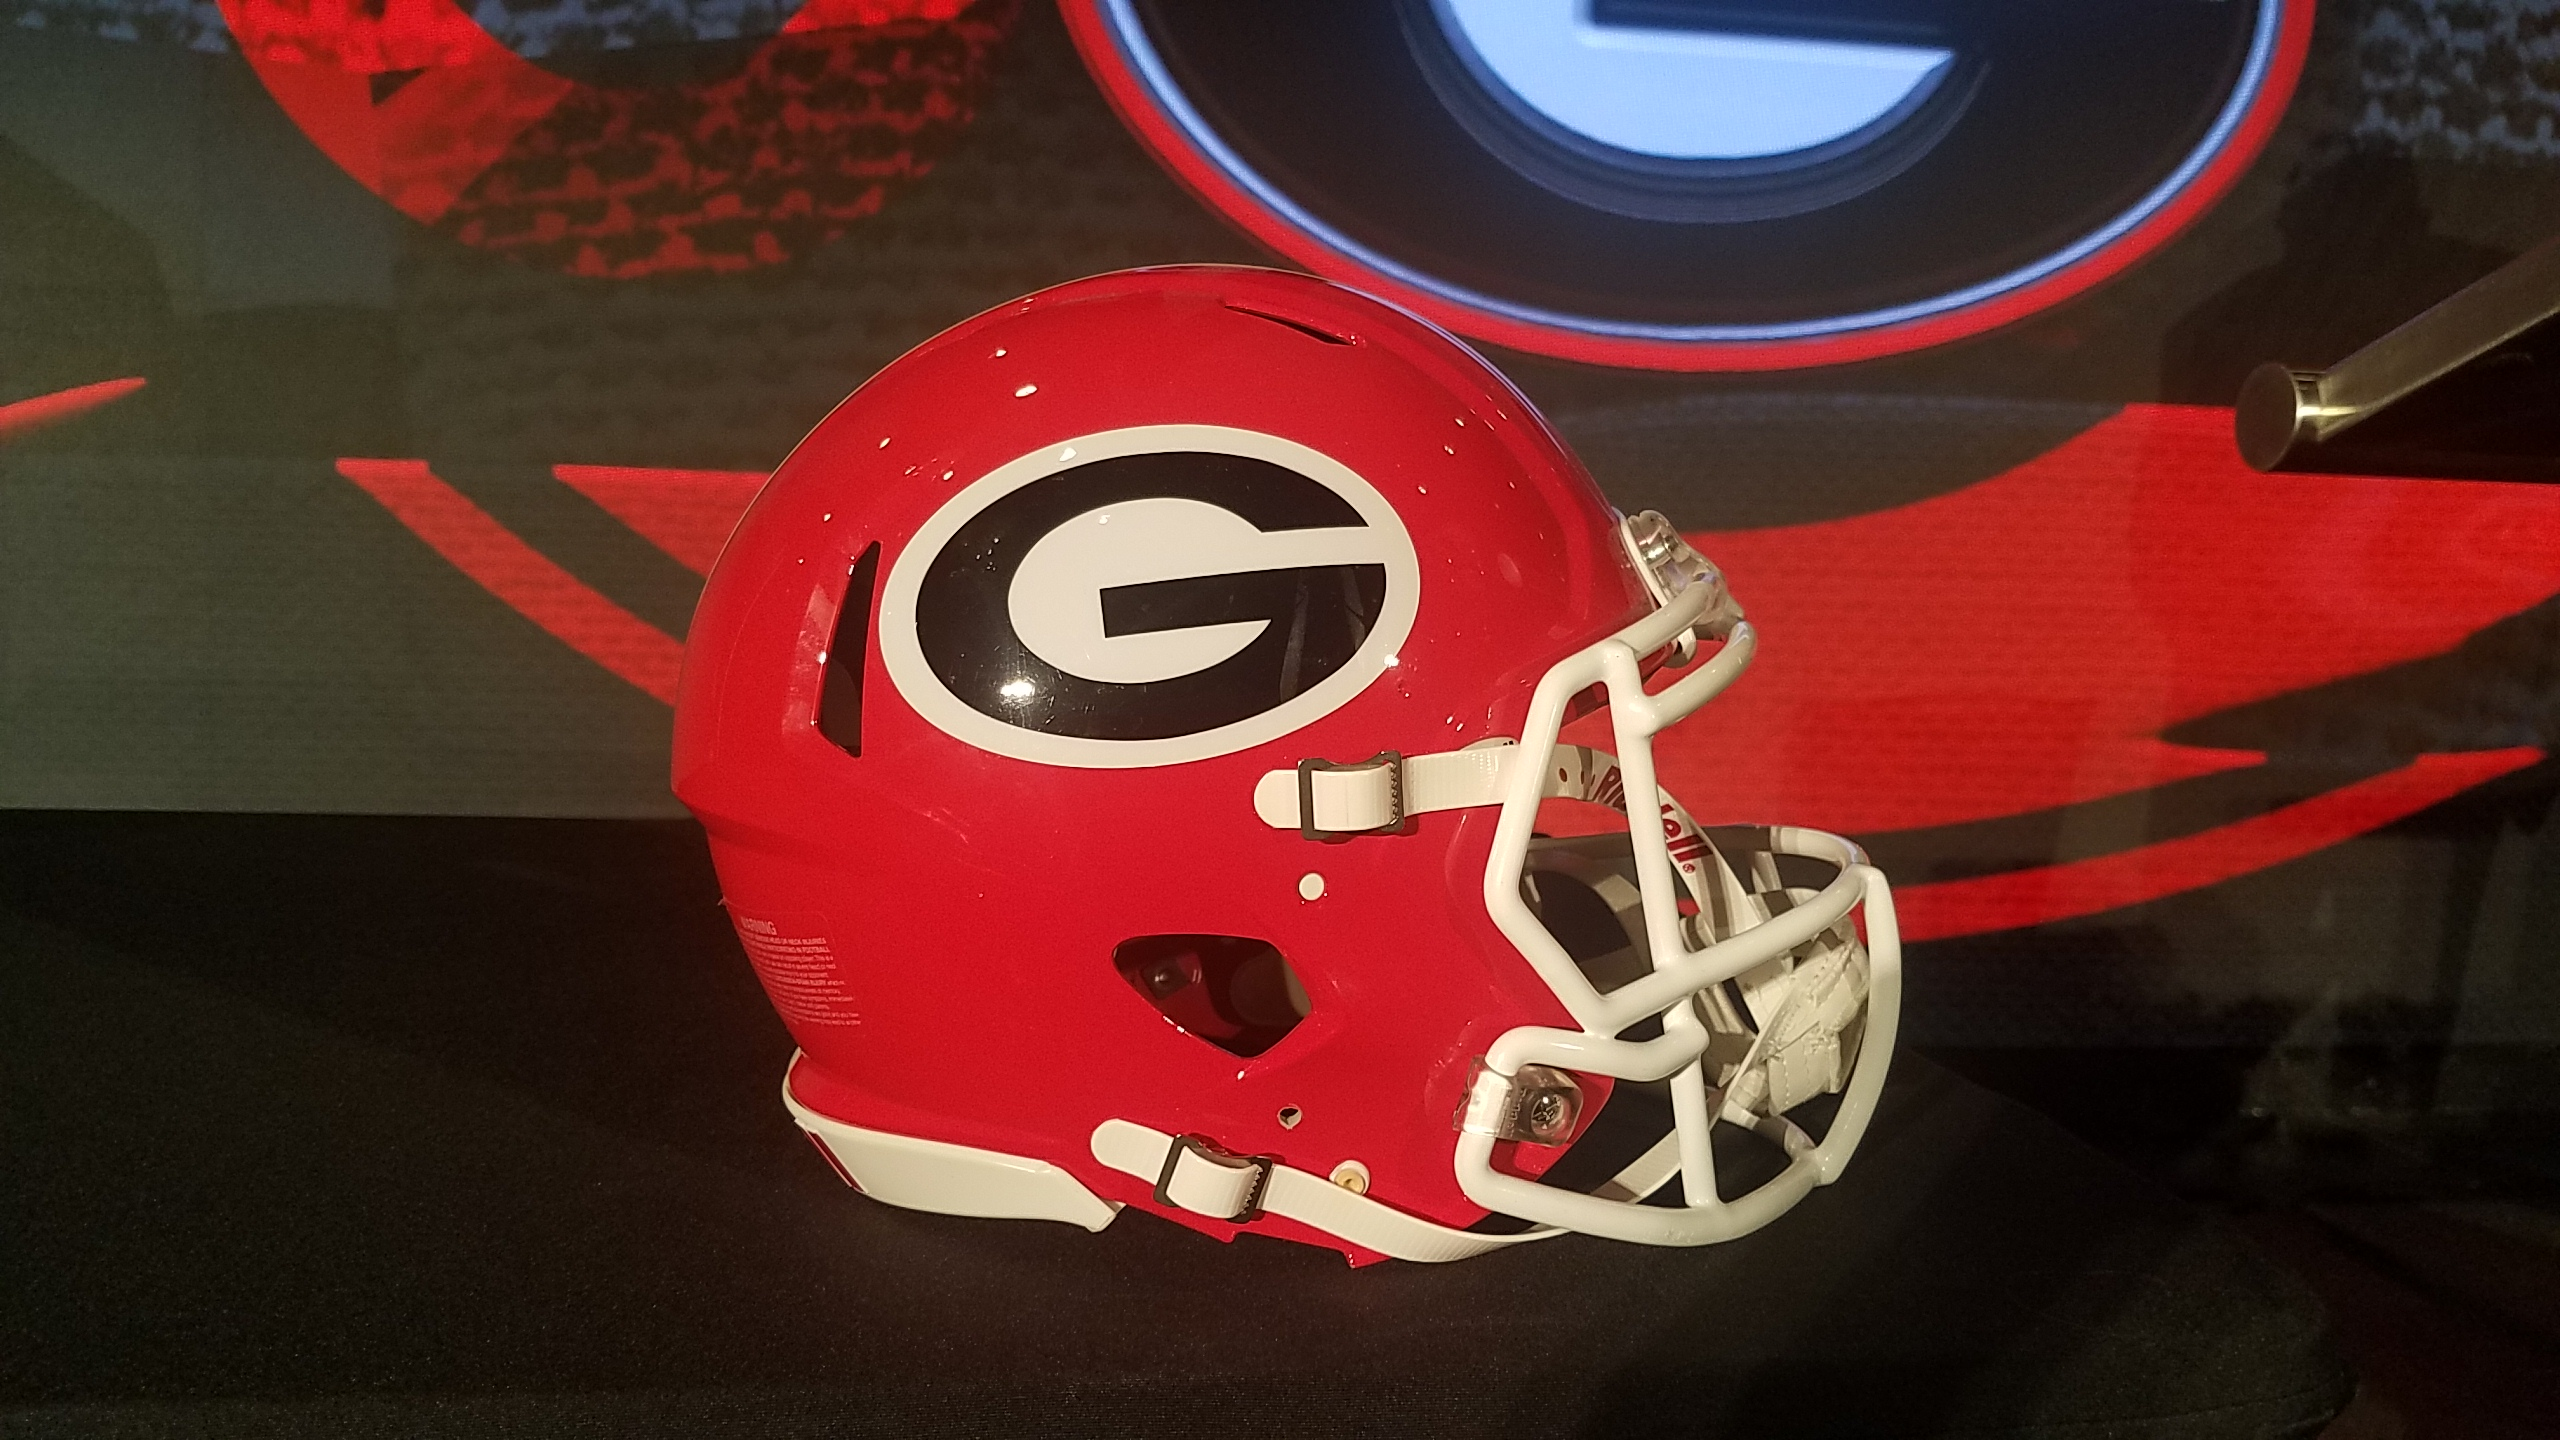 VIDEOS/PODCASTS: Everything from Georgia at #SECMD21